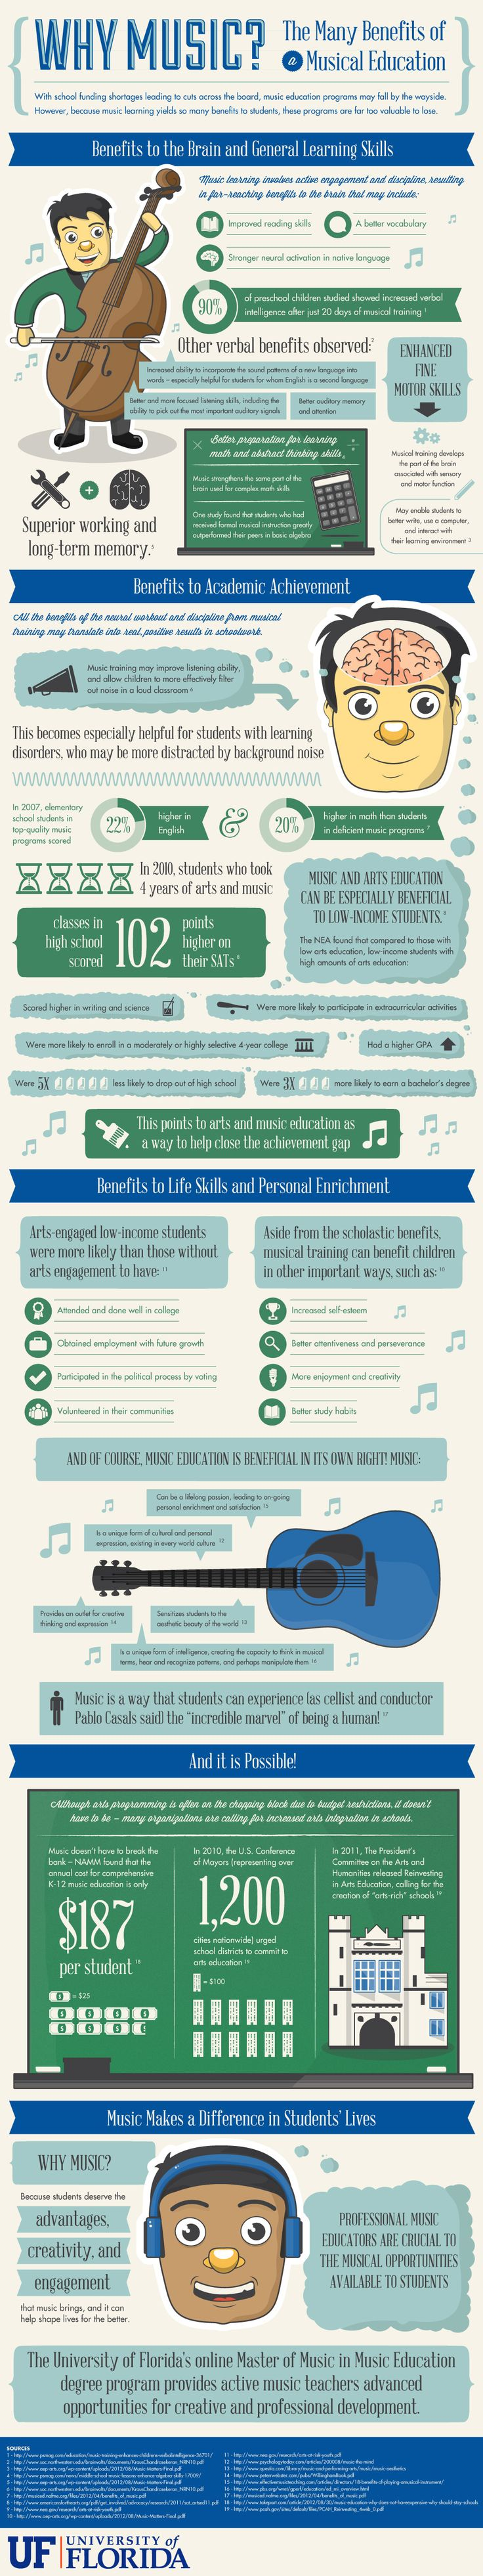 importance of learning and teaching music along with the benefits that rise from music education